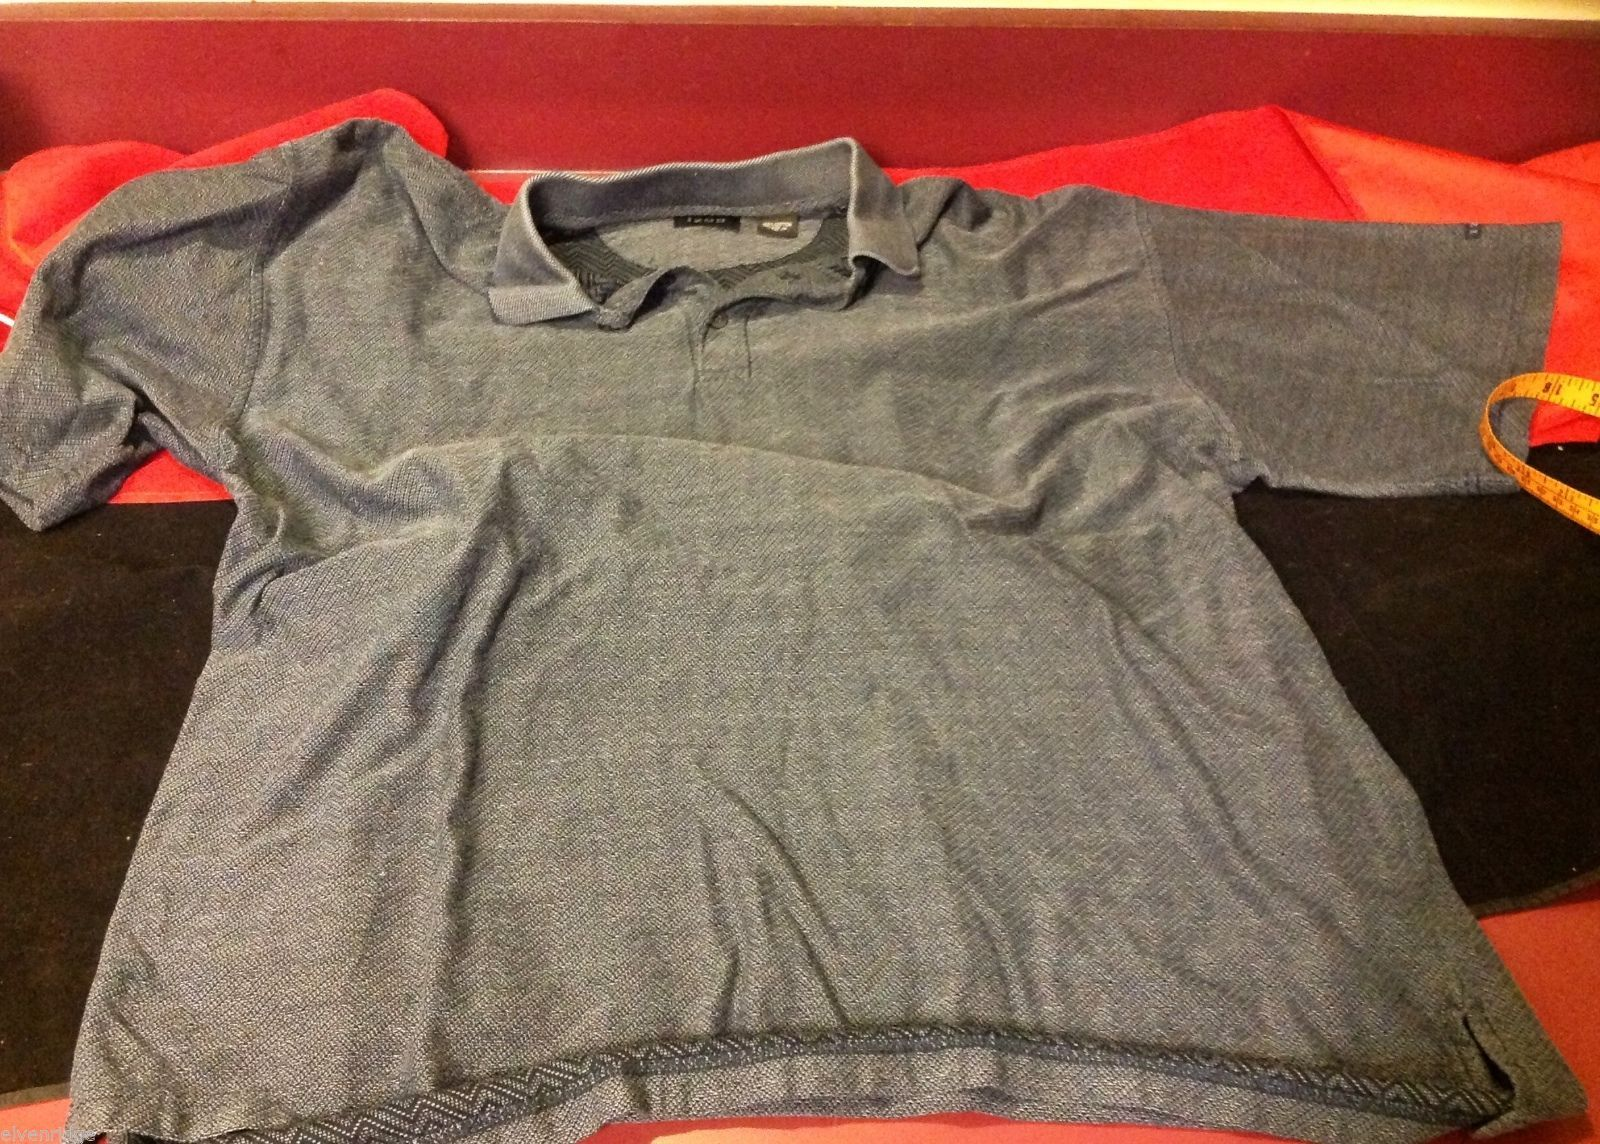 Izod men's shirt in blue gray golf or polo shirt